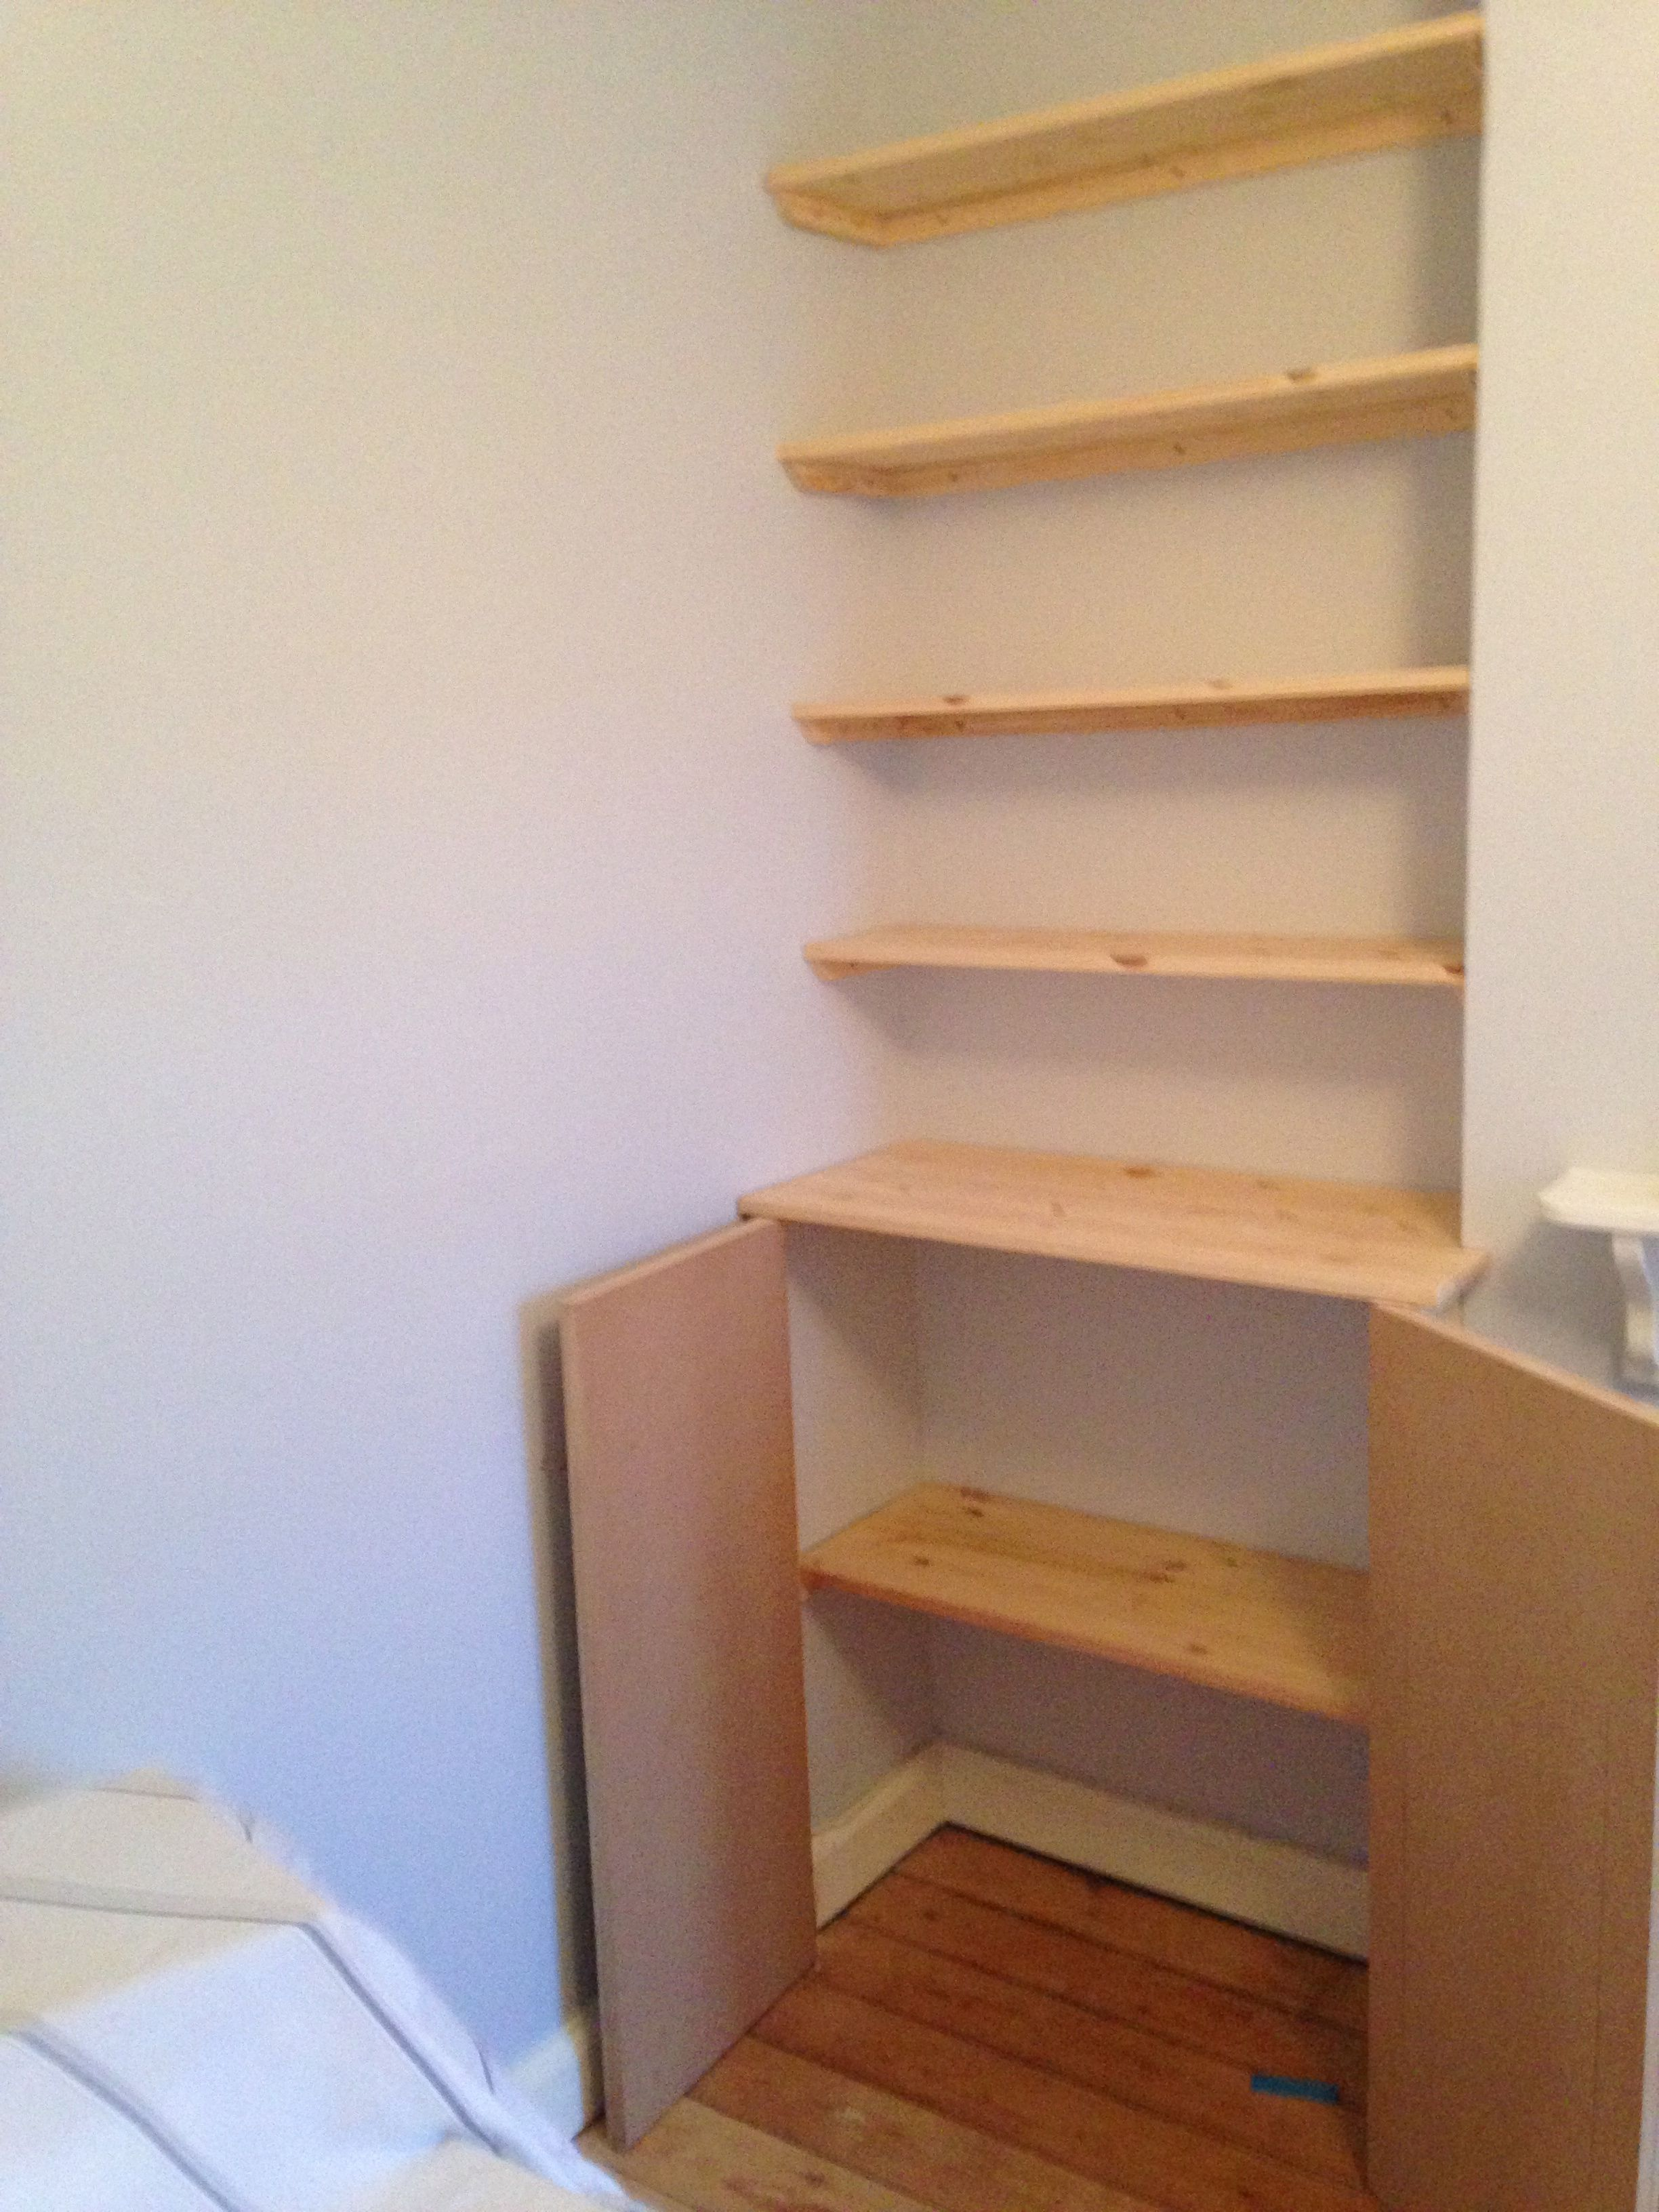 Fitted shelving, cupboards and flooring | Diy shelves ...